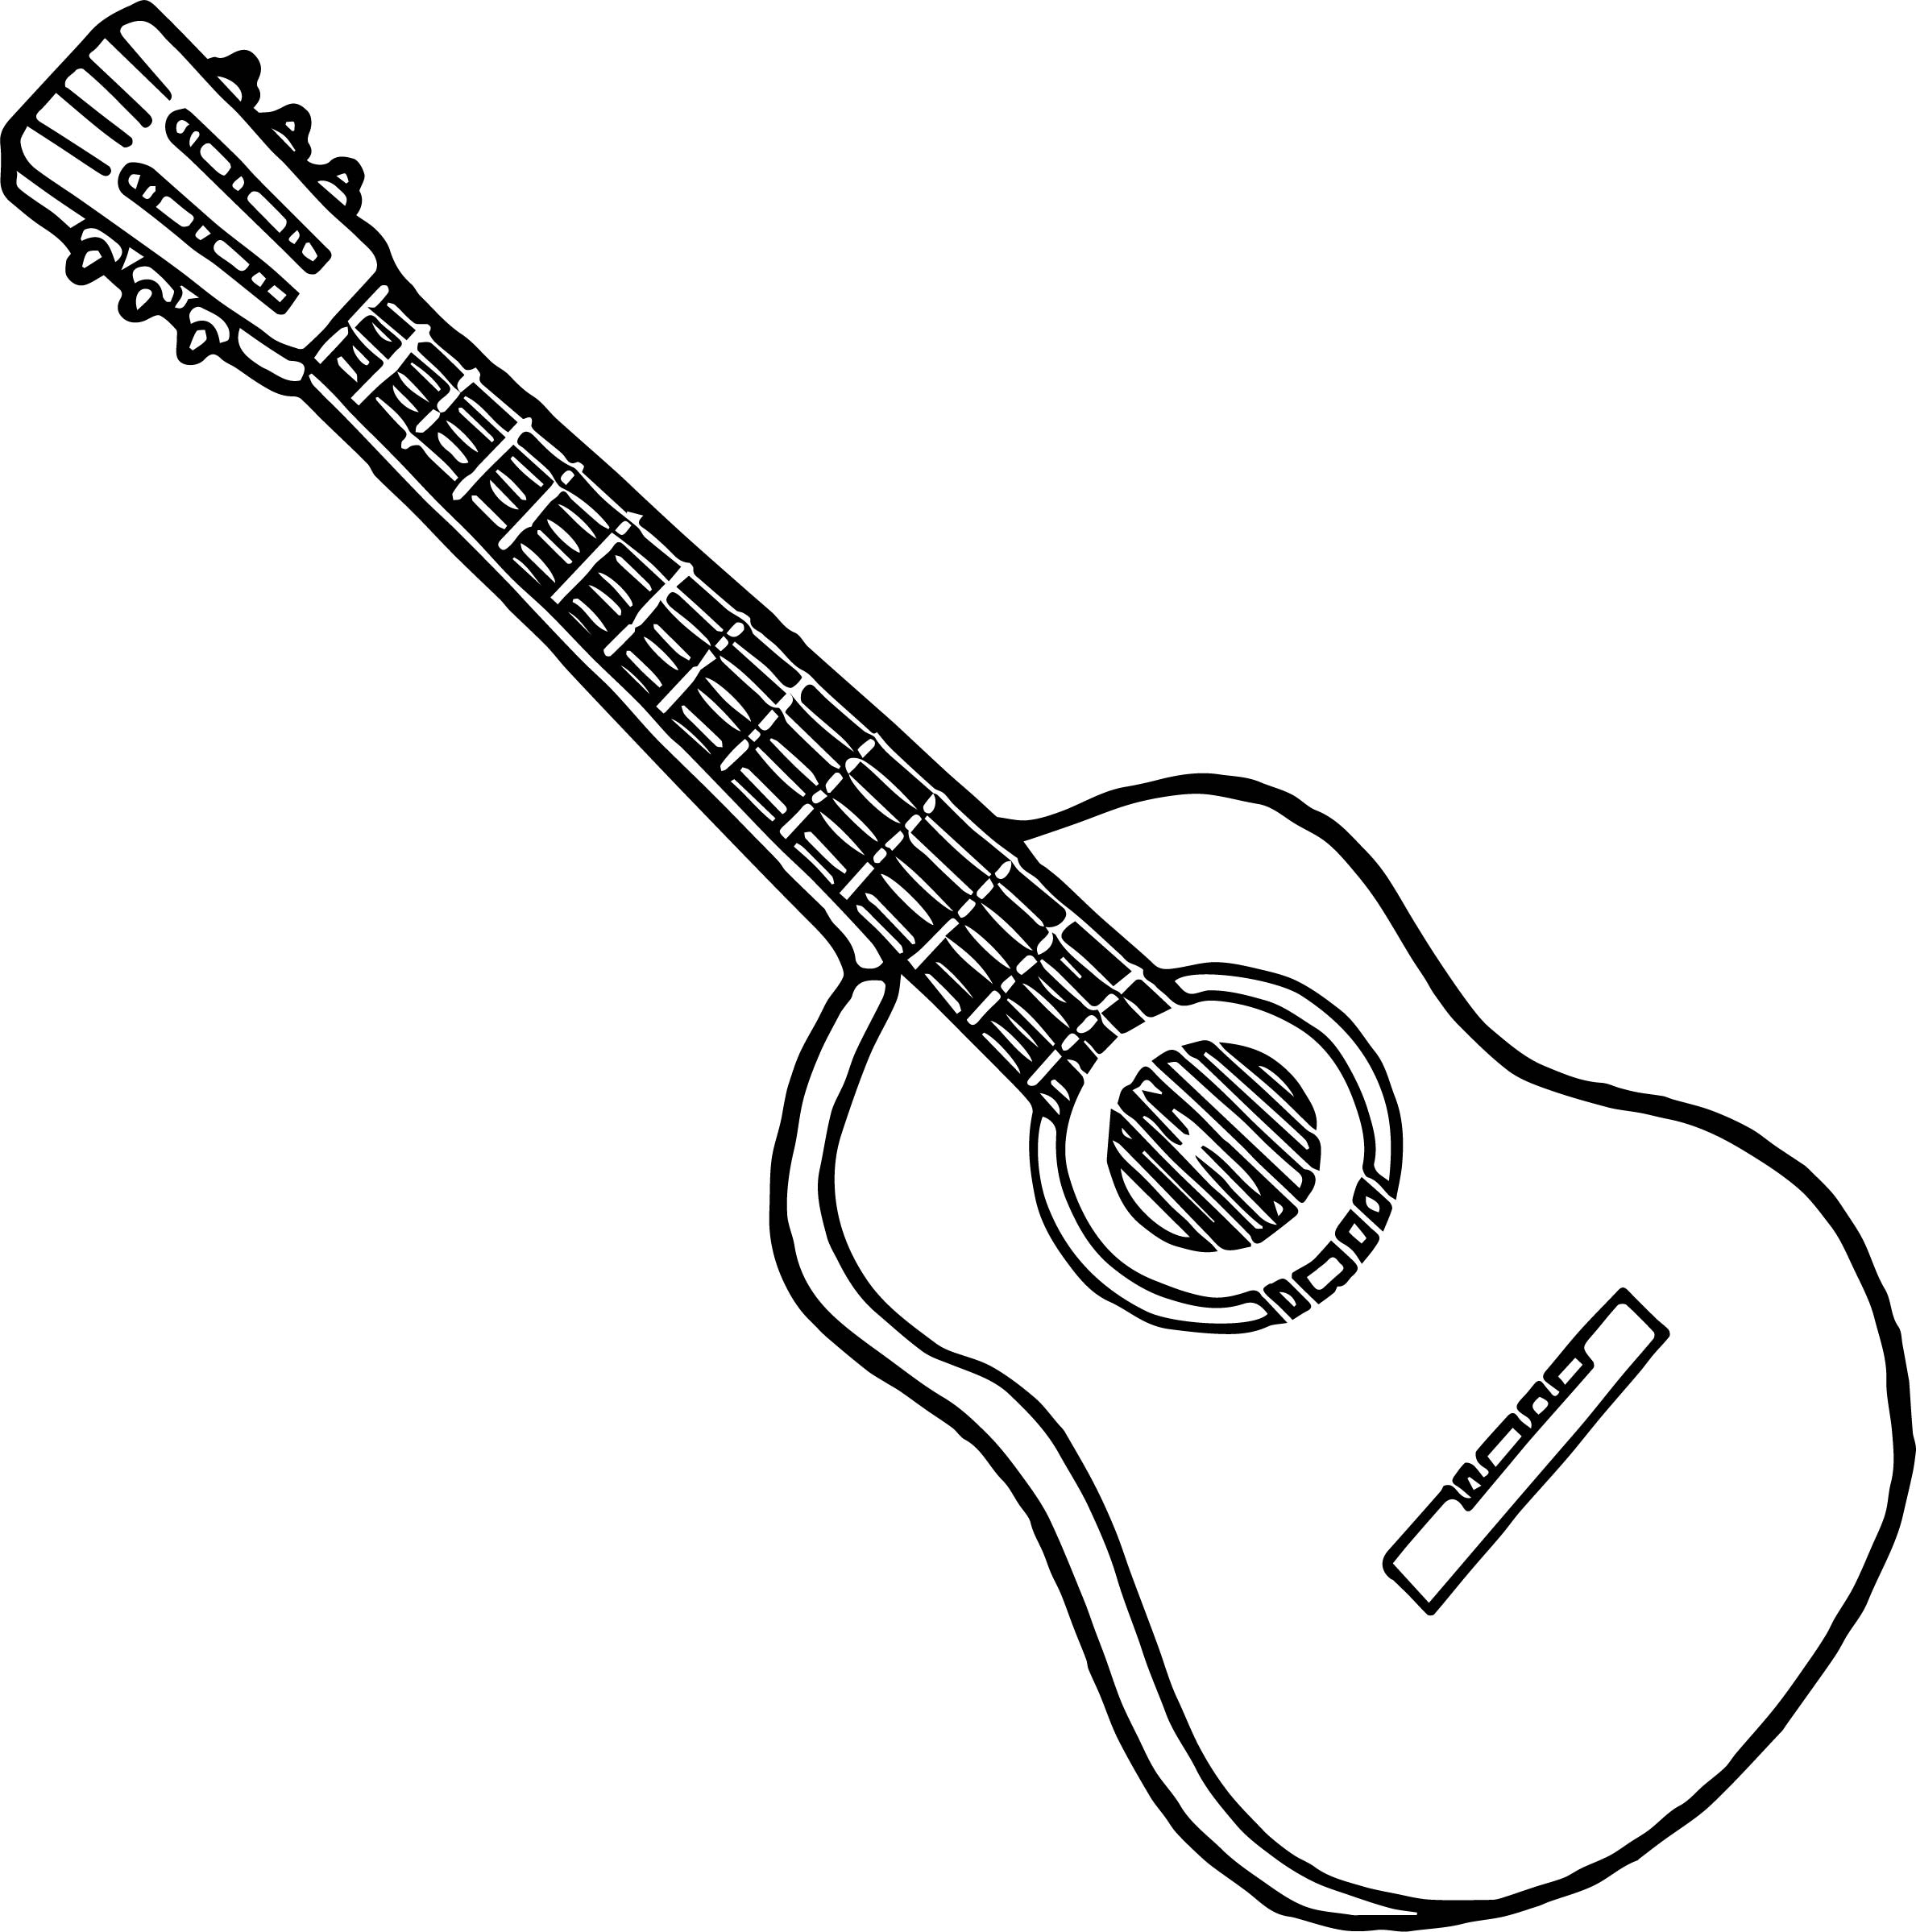 Strings guitar playing the guitar coloring page for Electric guitar coloring page